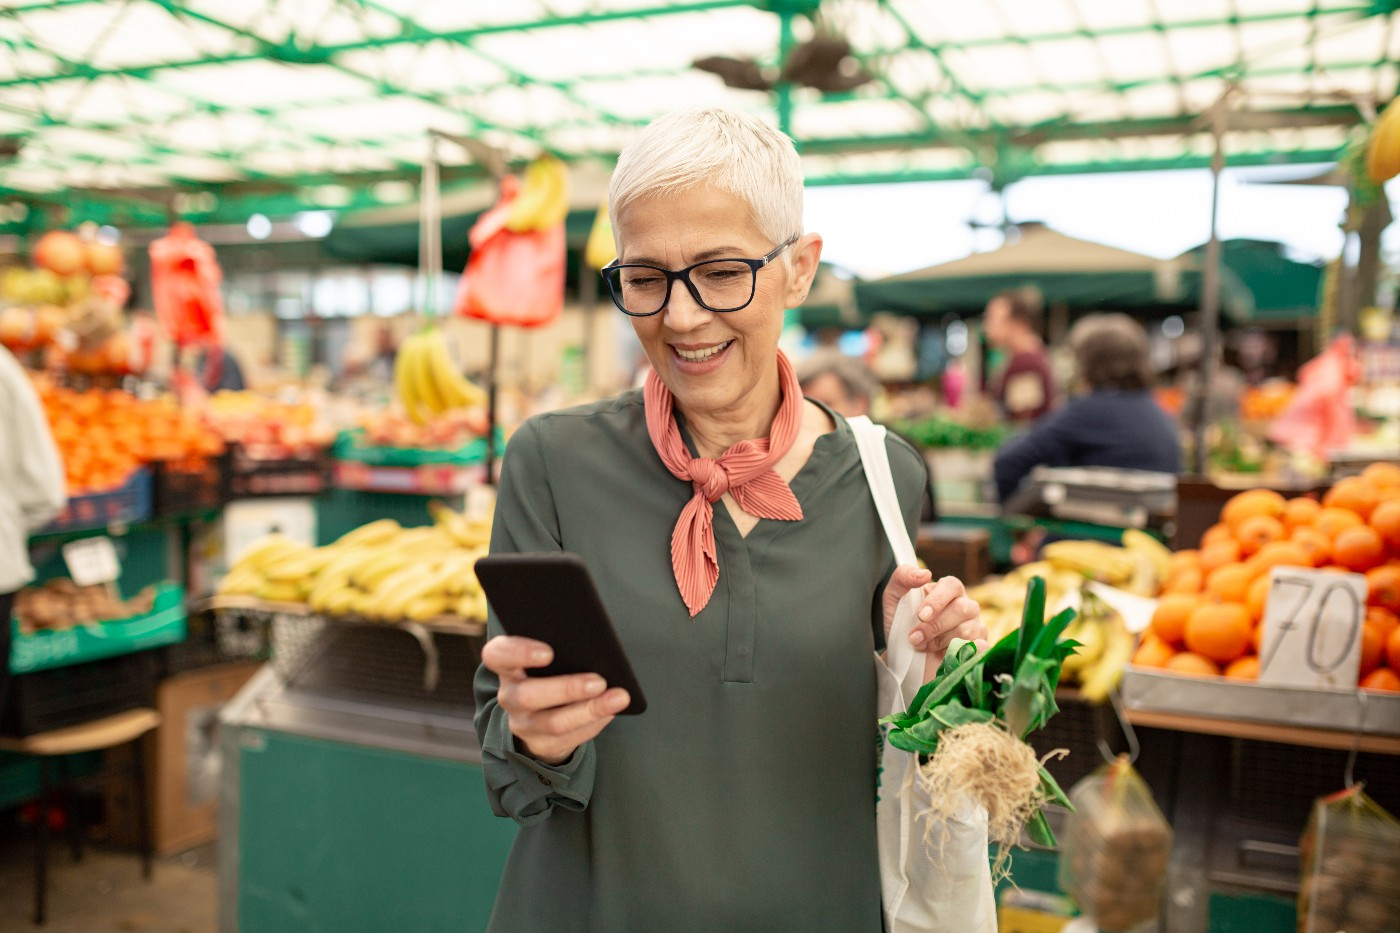 https://tickertapecdn.tdameritrade.com/assets/images/pages/md/Senior woman shopping in a grocery store: Required minimum distributions (RMD)